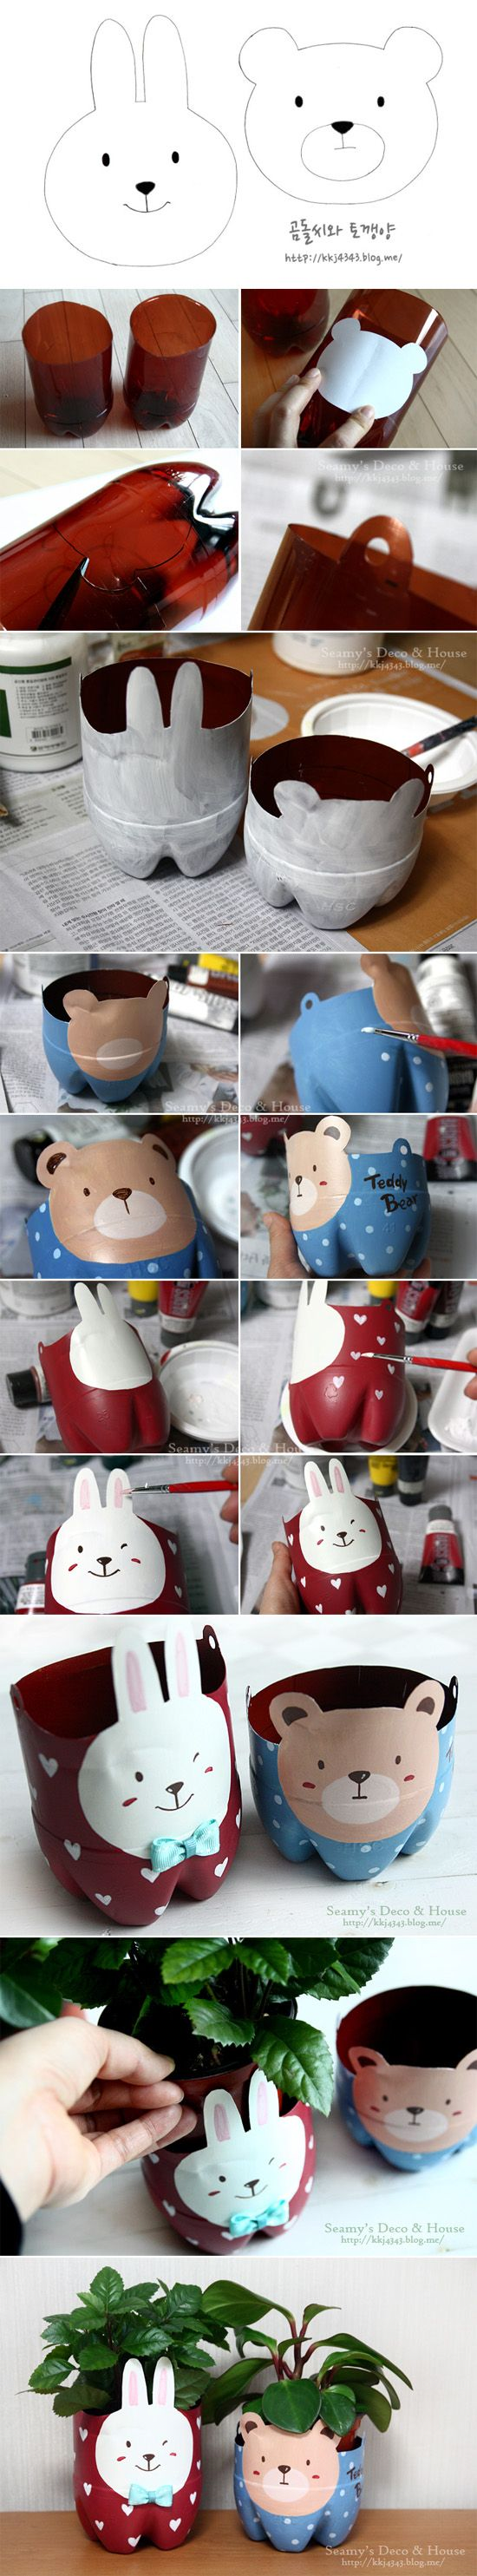 Divertidos maceteros reciclando botellas de plástico...hanging plastic bottle planter with bear or bunny face. So cute, not in English but easy to understand.